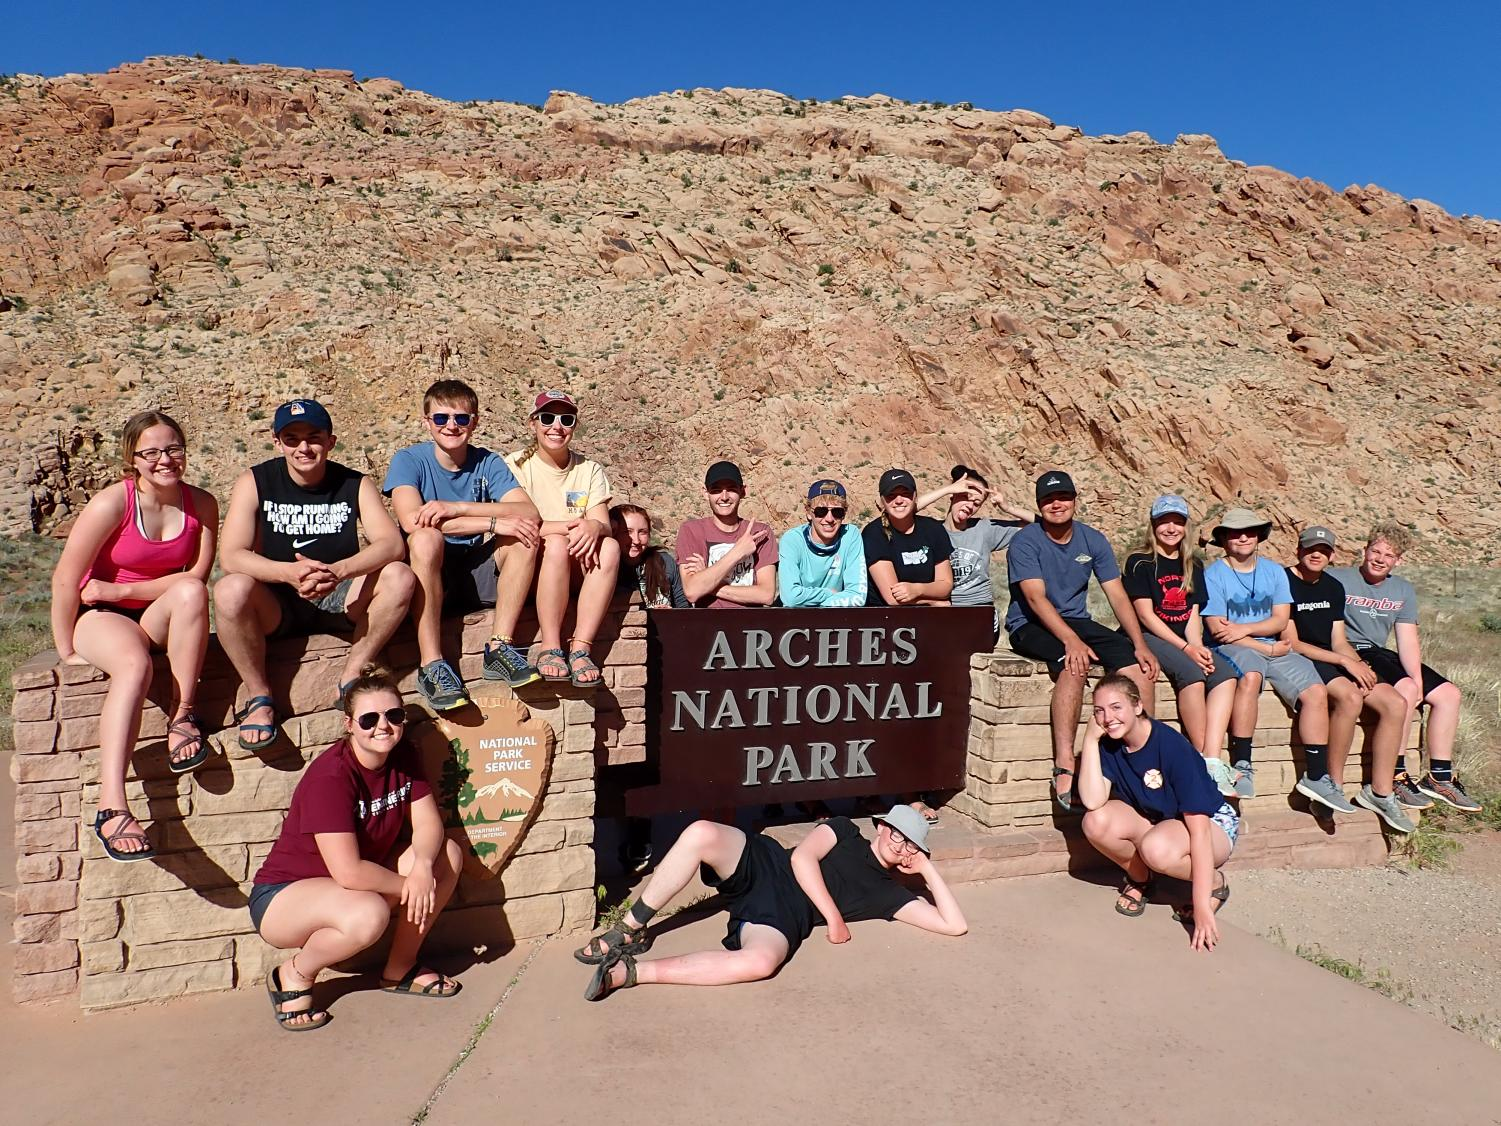 Sixteen Doherty students participated in the Doherty Science Spring Field Study to Arches National Park in Utah.  While hiking and whitewater rafting through the area, they studied the unique geology of the area and learned about the importance of the Colorado River in the southwest and the issues with its overuse.